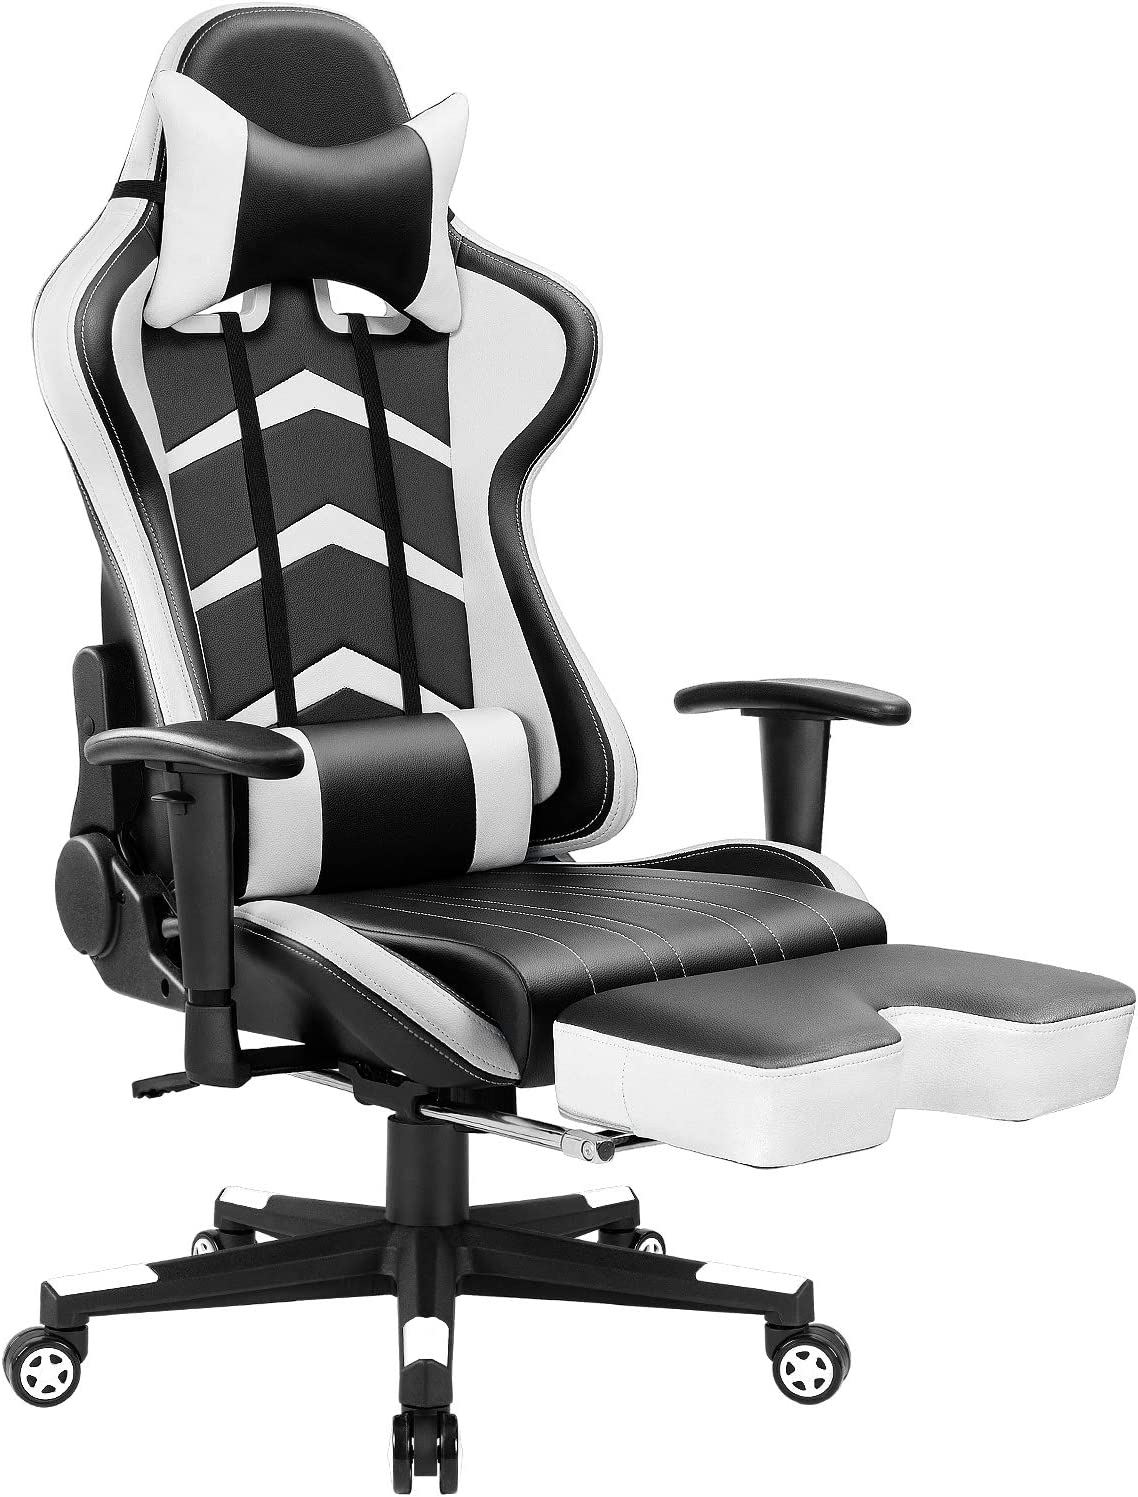 Furmax Gaming Chair High Back Office Racing Chair, Ergonomic Swivel Computer Chair Executive Leather Desk Chair with Footrest, Bucket Seat and Lumbar Support (White)